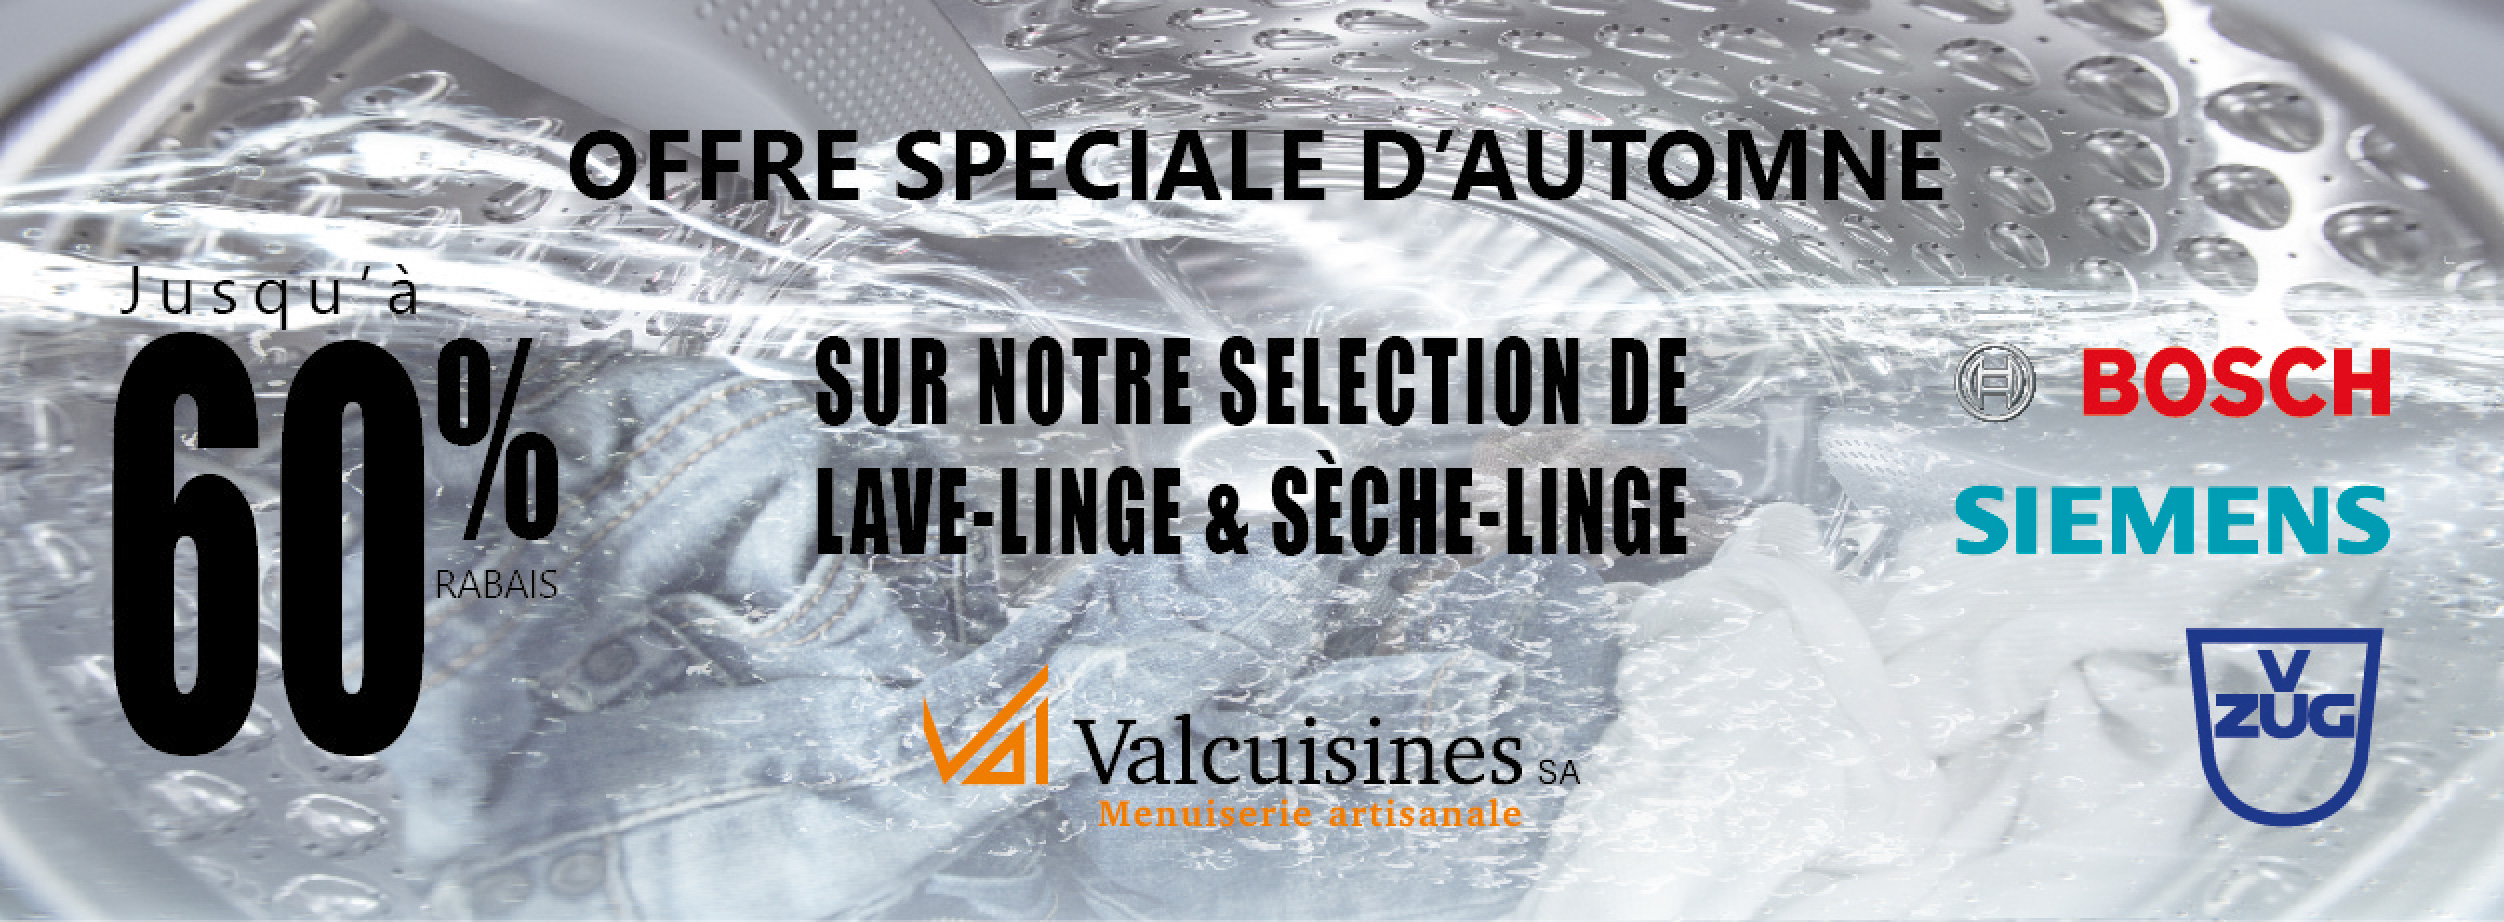 Valcuisines - Offre buanderie 18